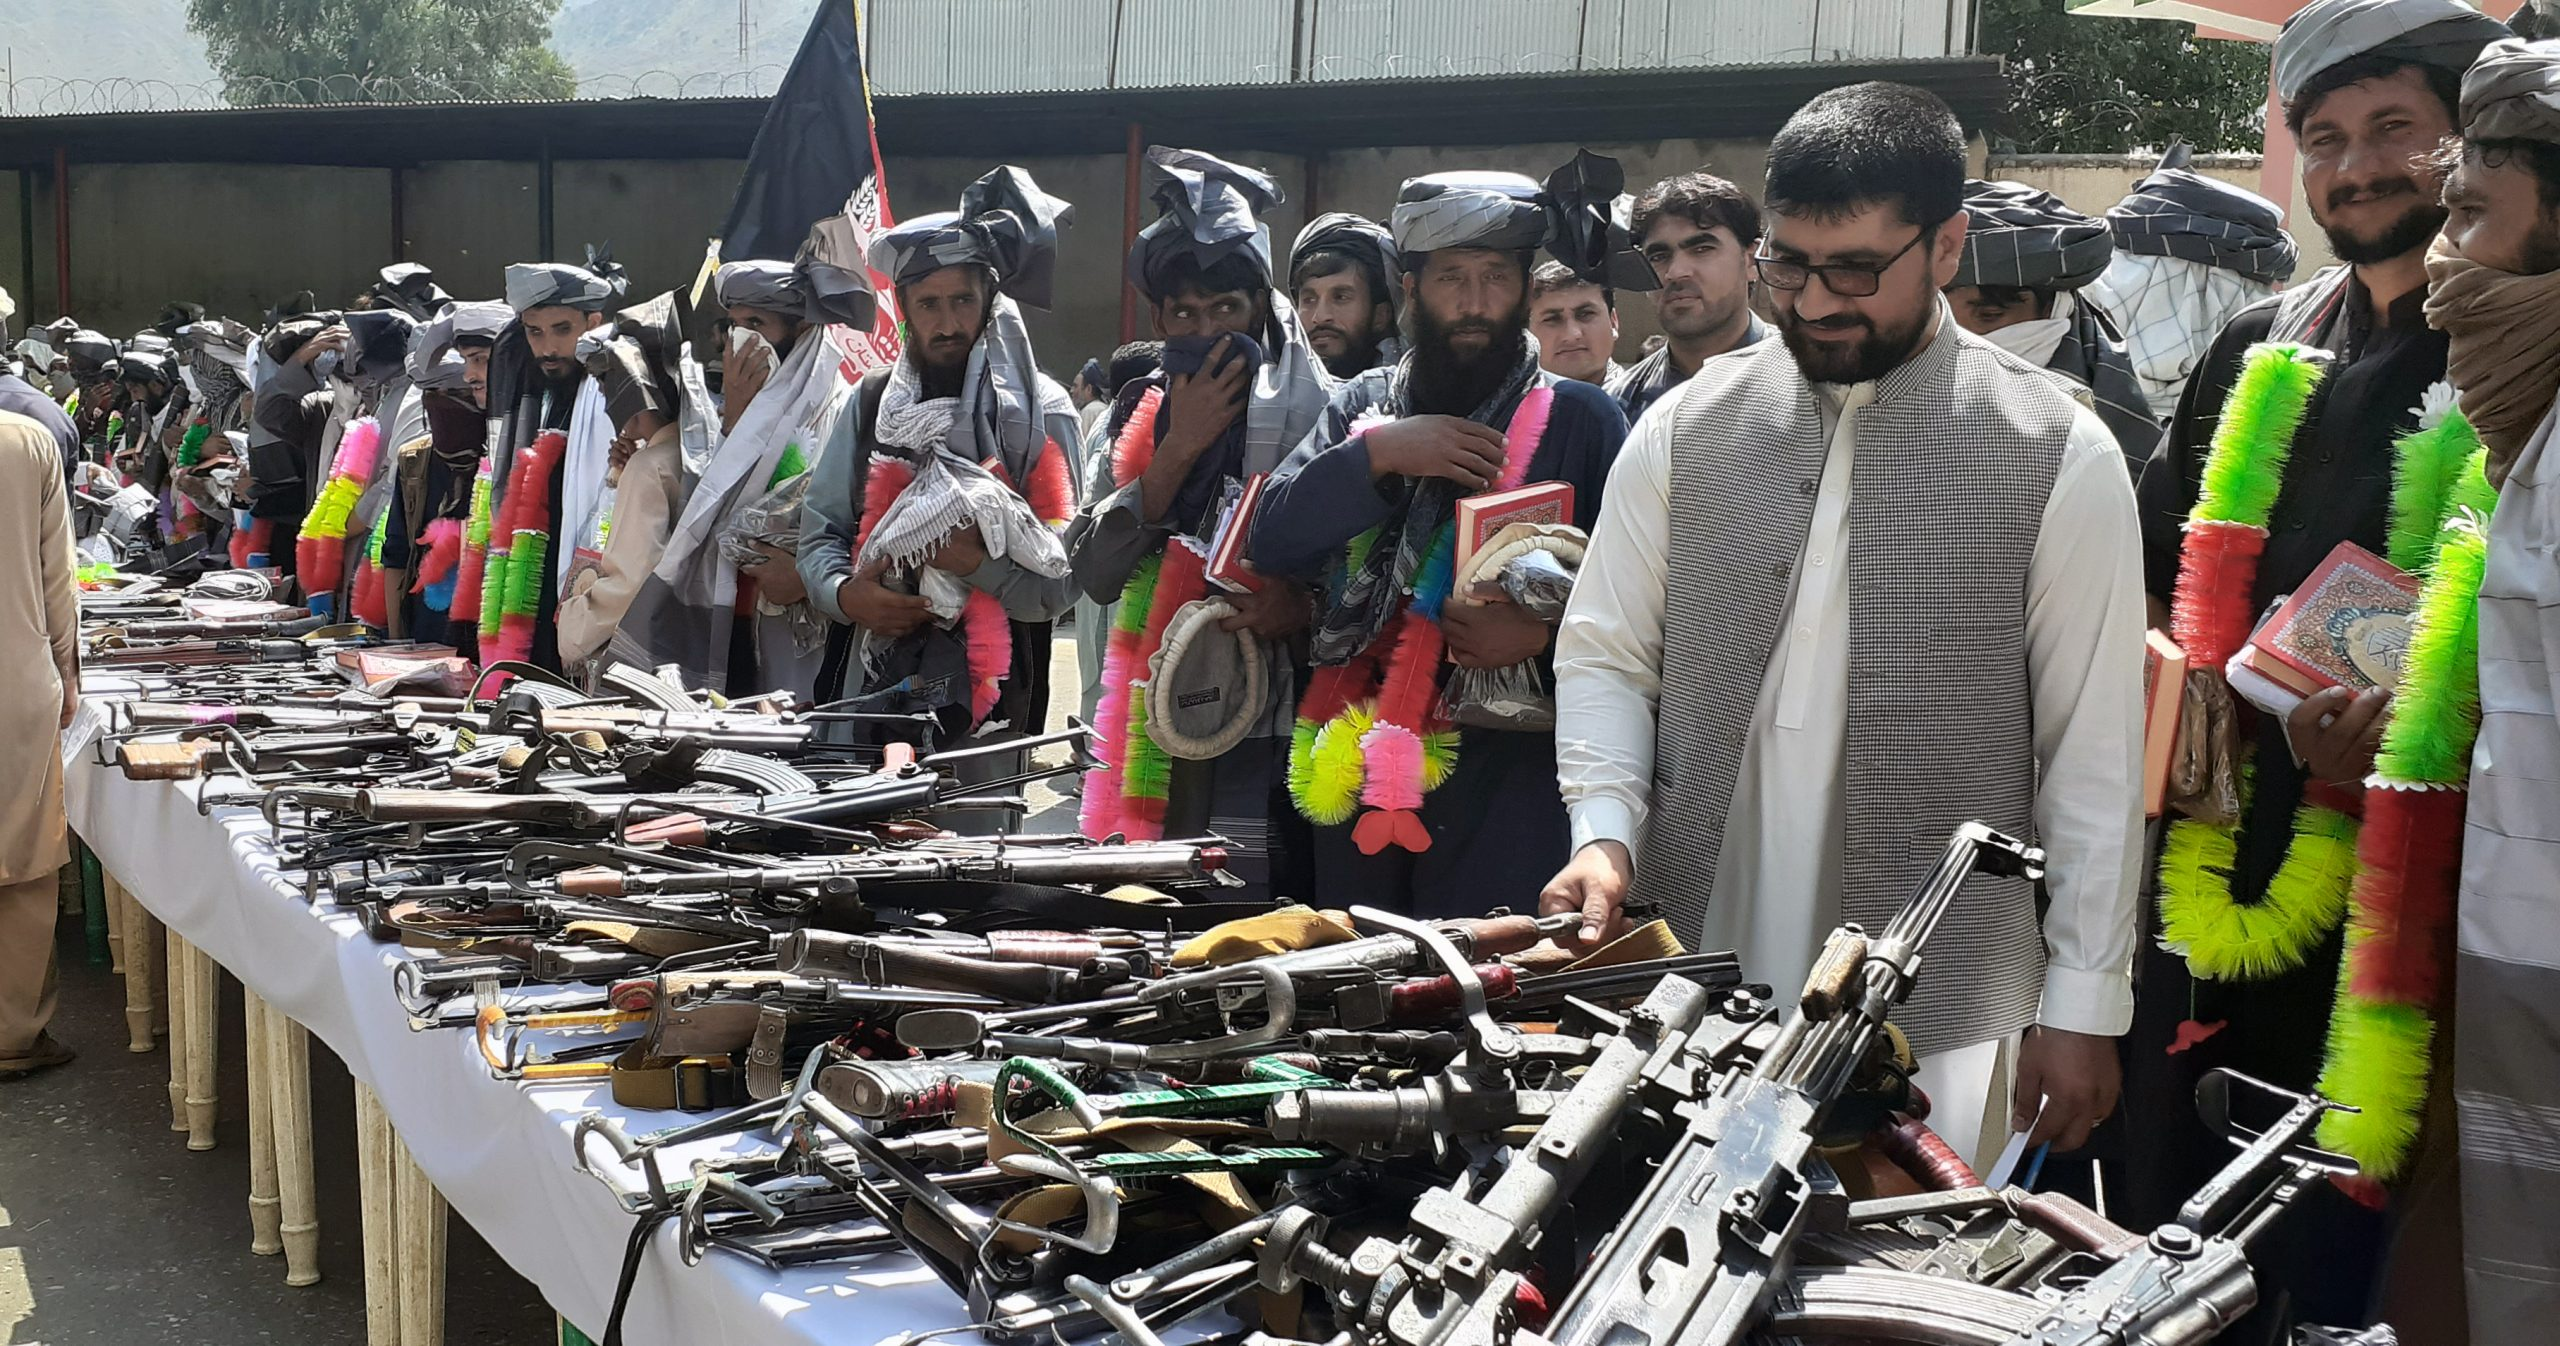 Violence in Afghanistan rising since the US-Taliban peace agreement